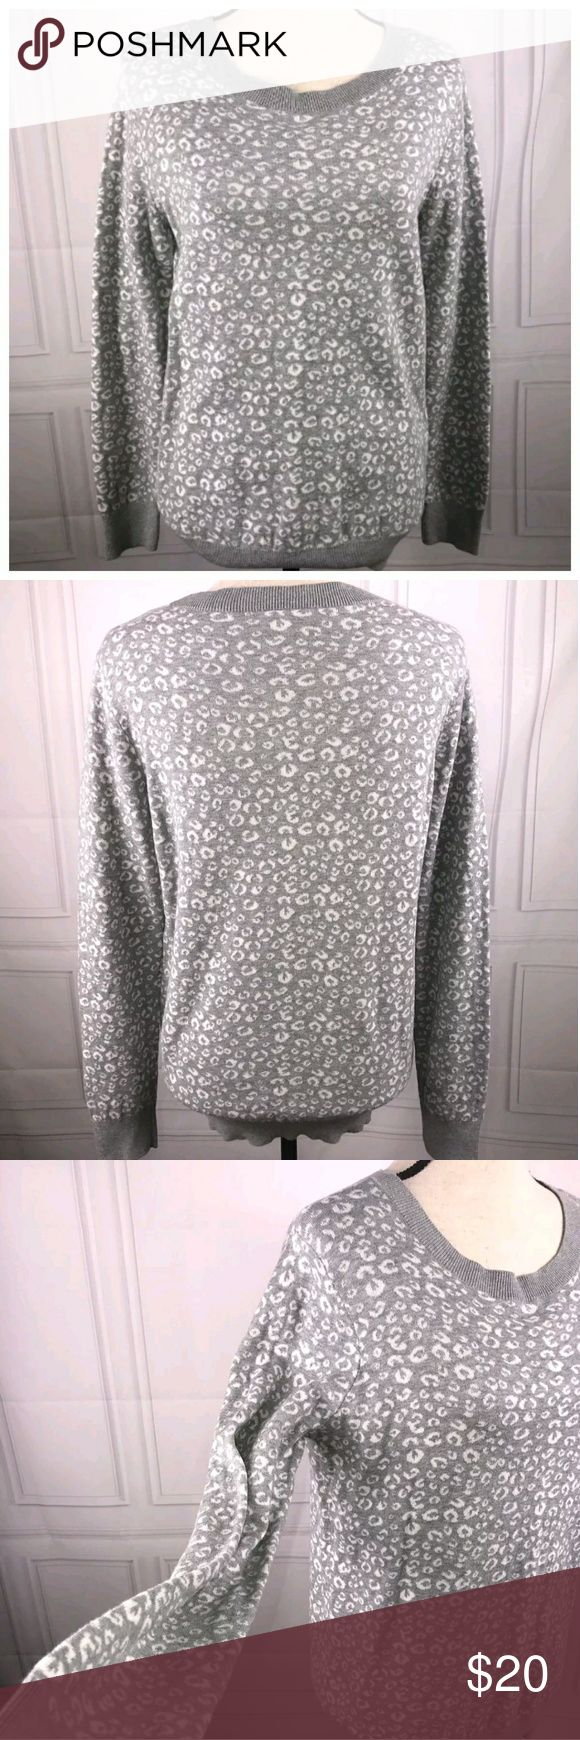 Ann Taylor Loft Factory Medium Sweater Ann Taylor Loft Factory Medium Gray White Animal Print Long Sleeve Sweater  See pictures for additional details.  Very good used condition  See pictures for flaws (if any), fabric content, cleaning instructions and measurements.  Pictures were taken in a smoke-free, pet friendly environment away from the pets.  Thank you for looking at my store! LOFT Sweaters Crew & Scoop Necks